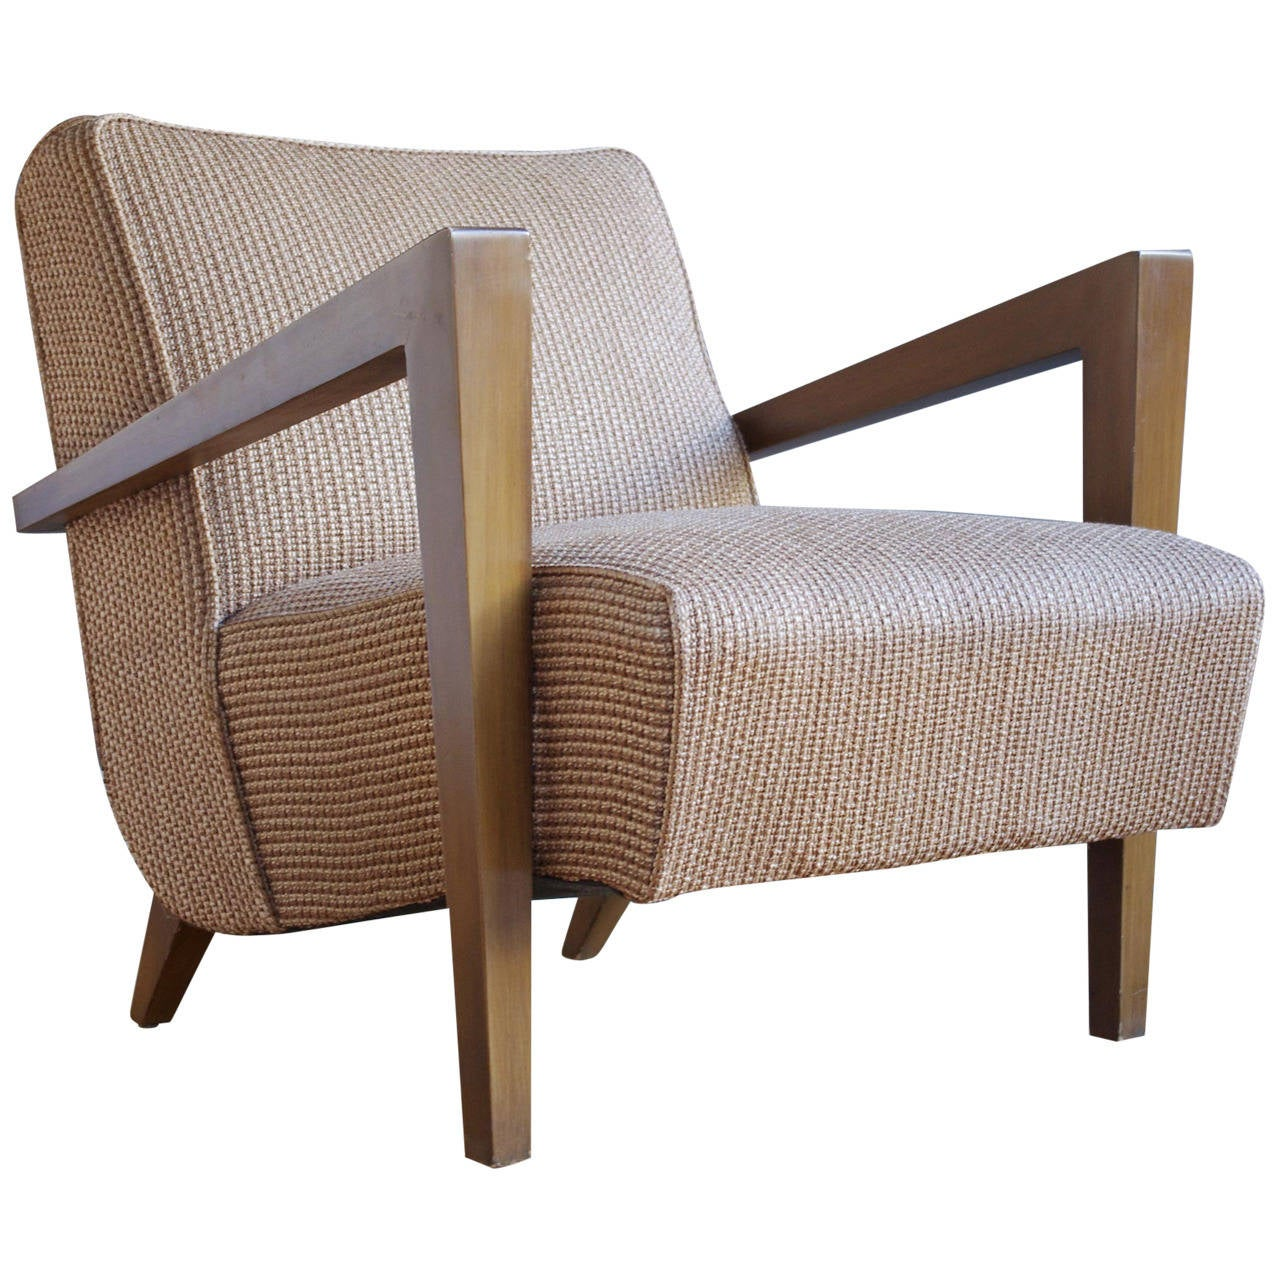 Sculptural mid century modern lounge chair at 1stdibs for Modern lounge furniture